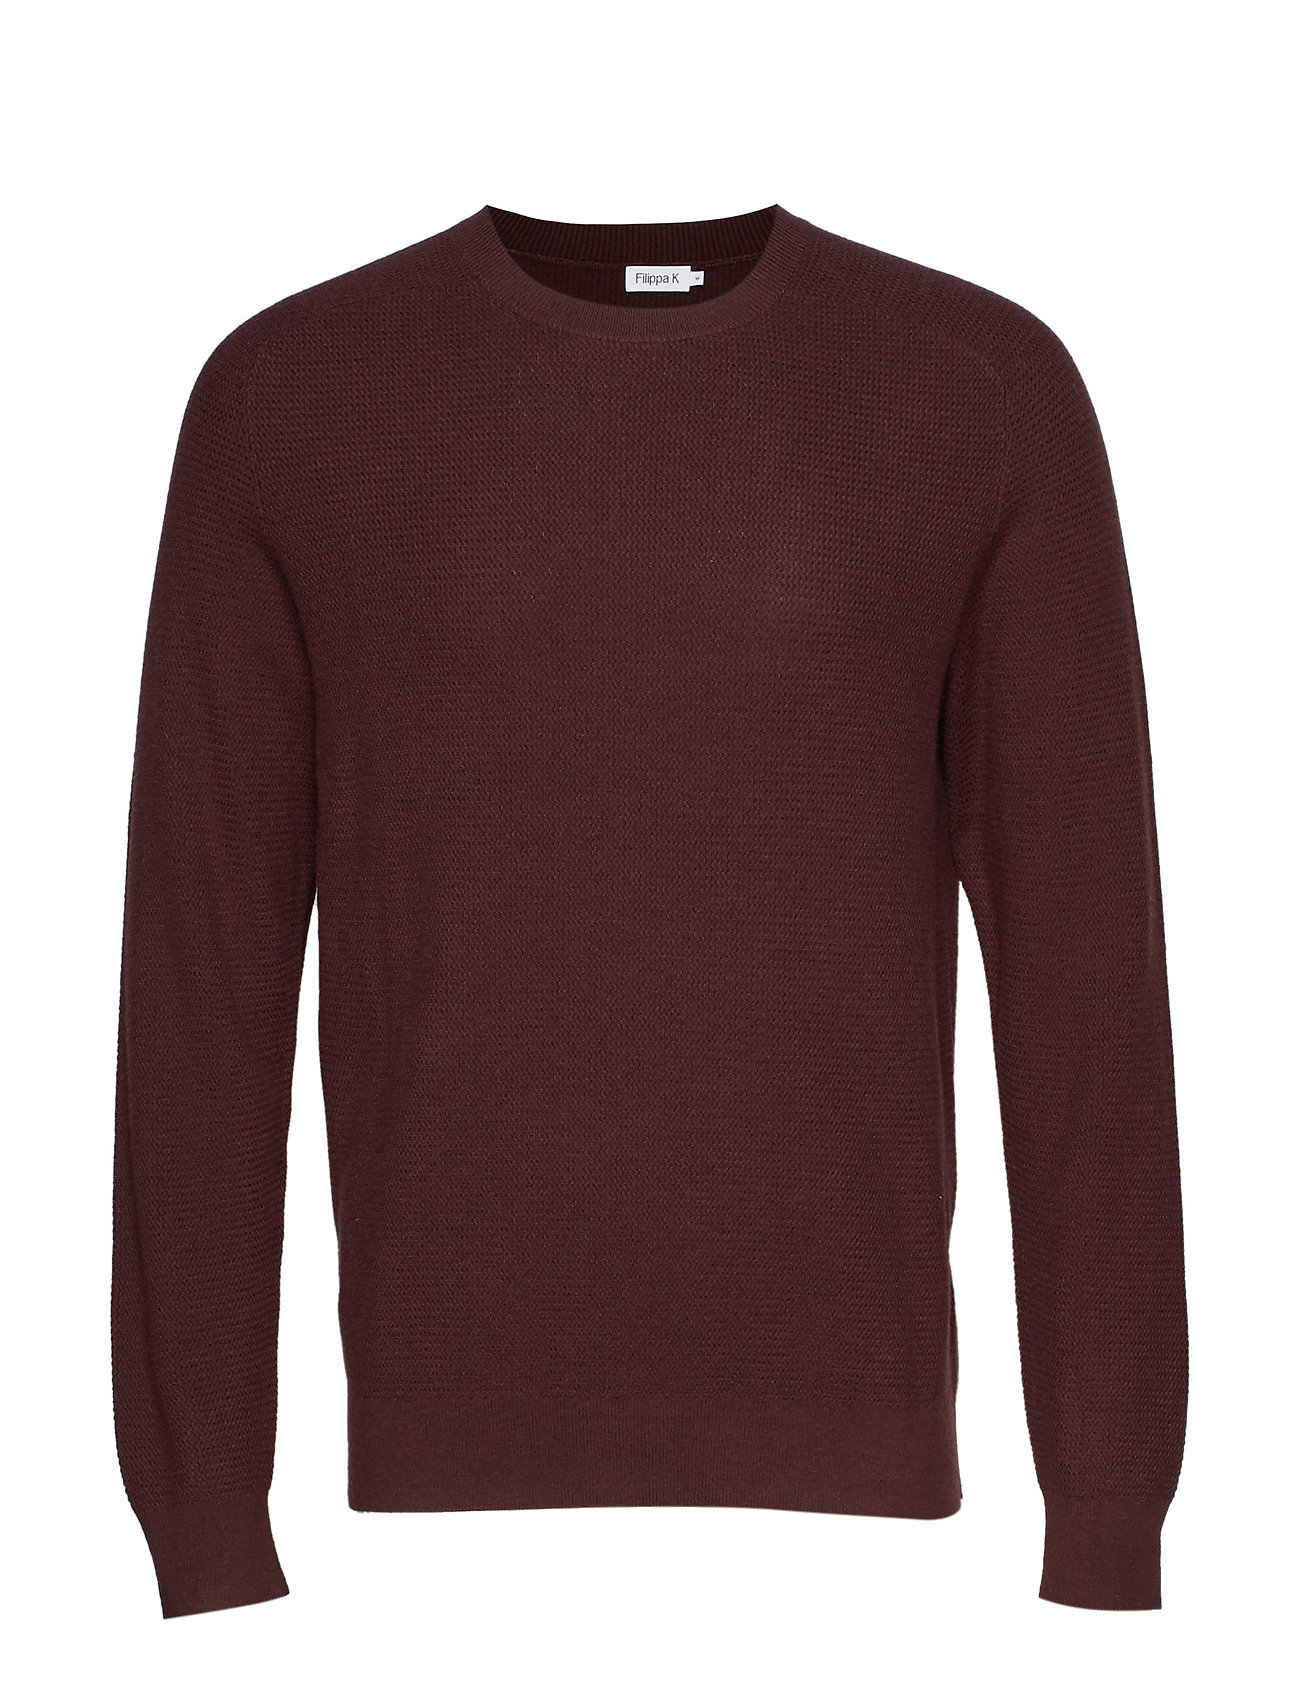 Filippa K M. Nicolai Sweater - DEEP SHIRA